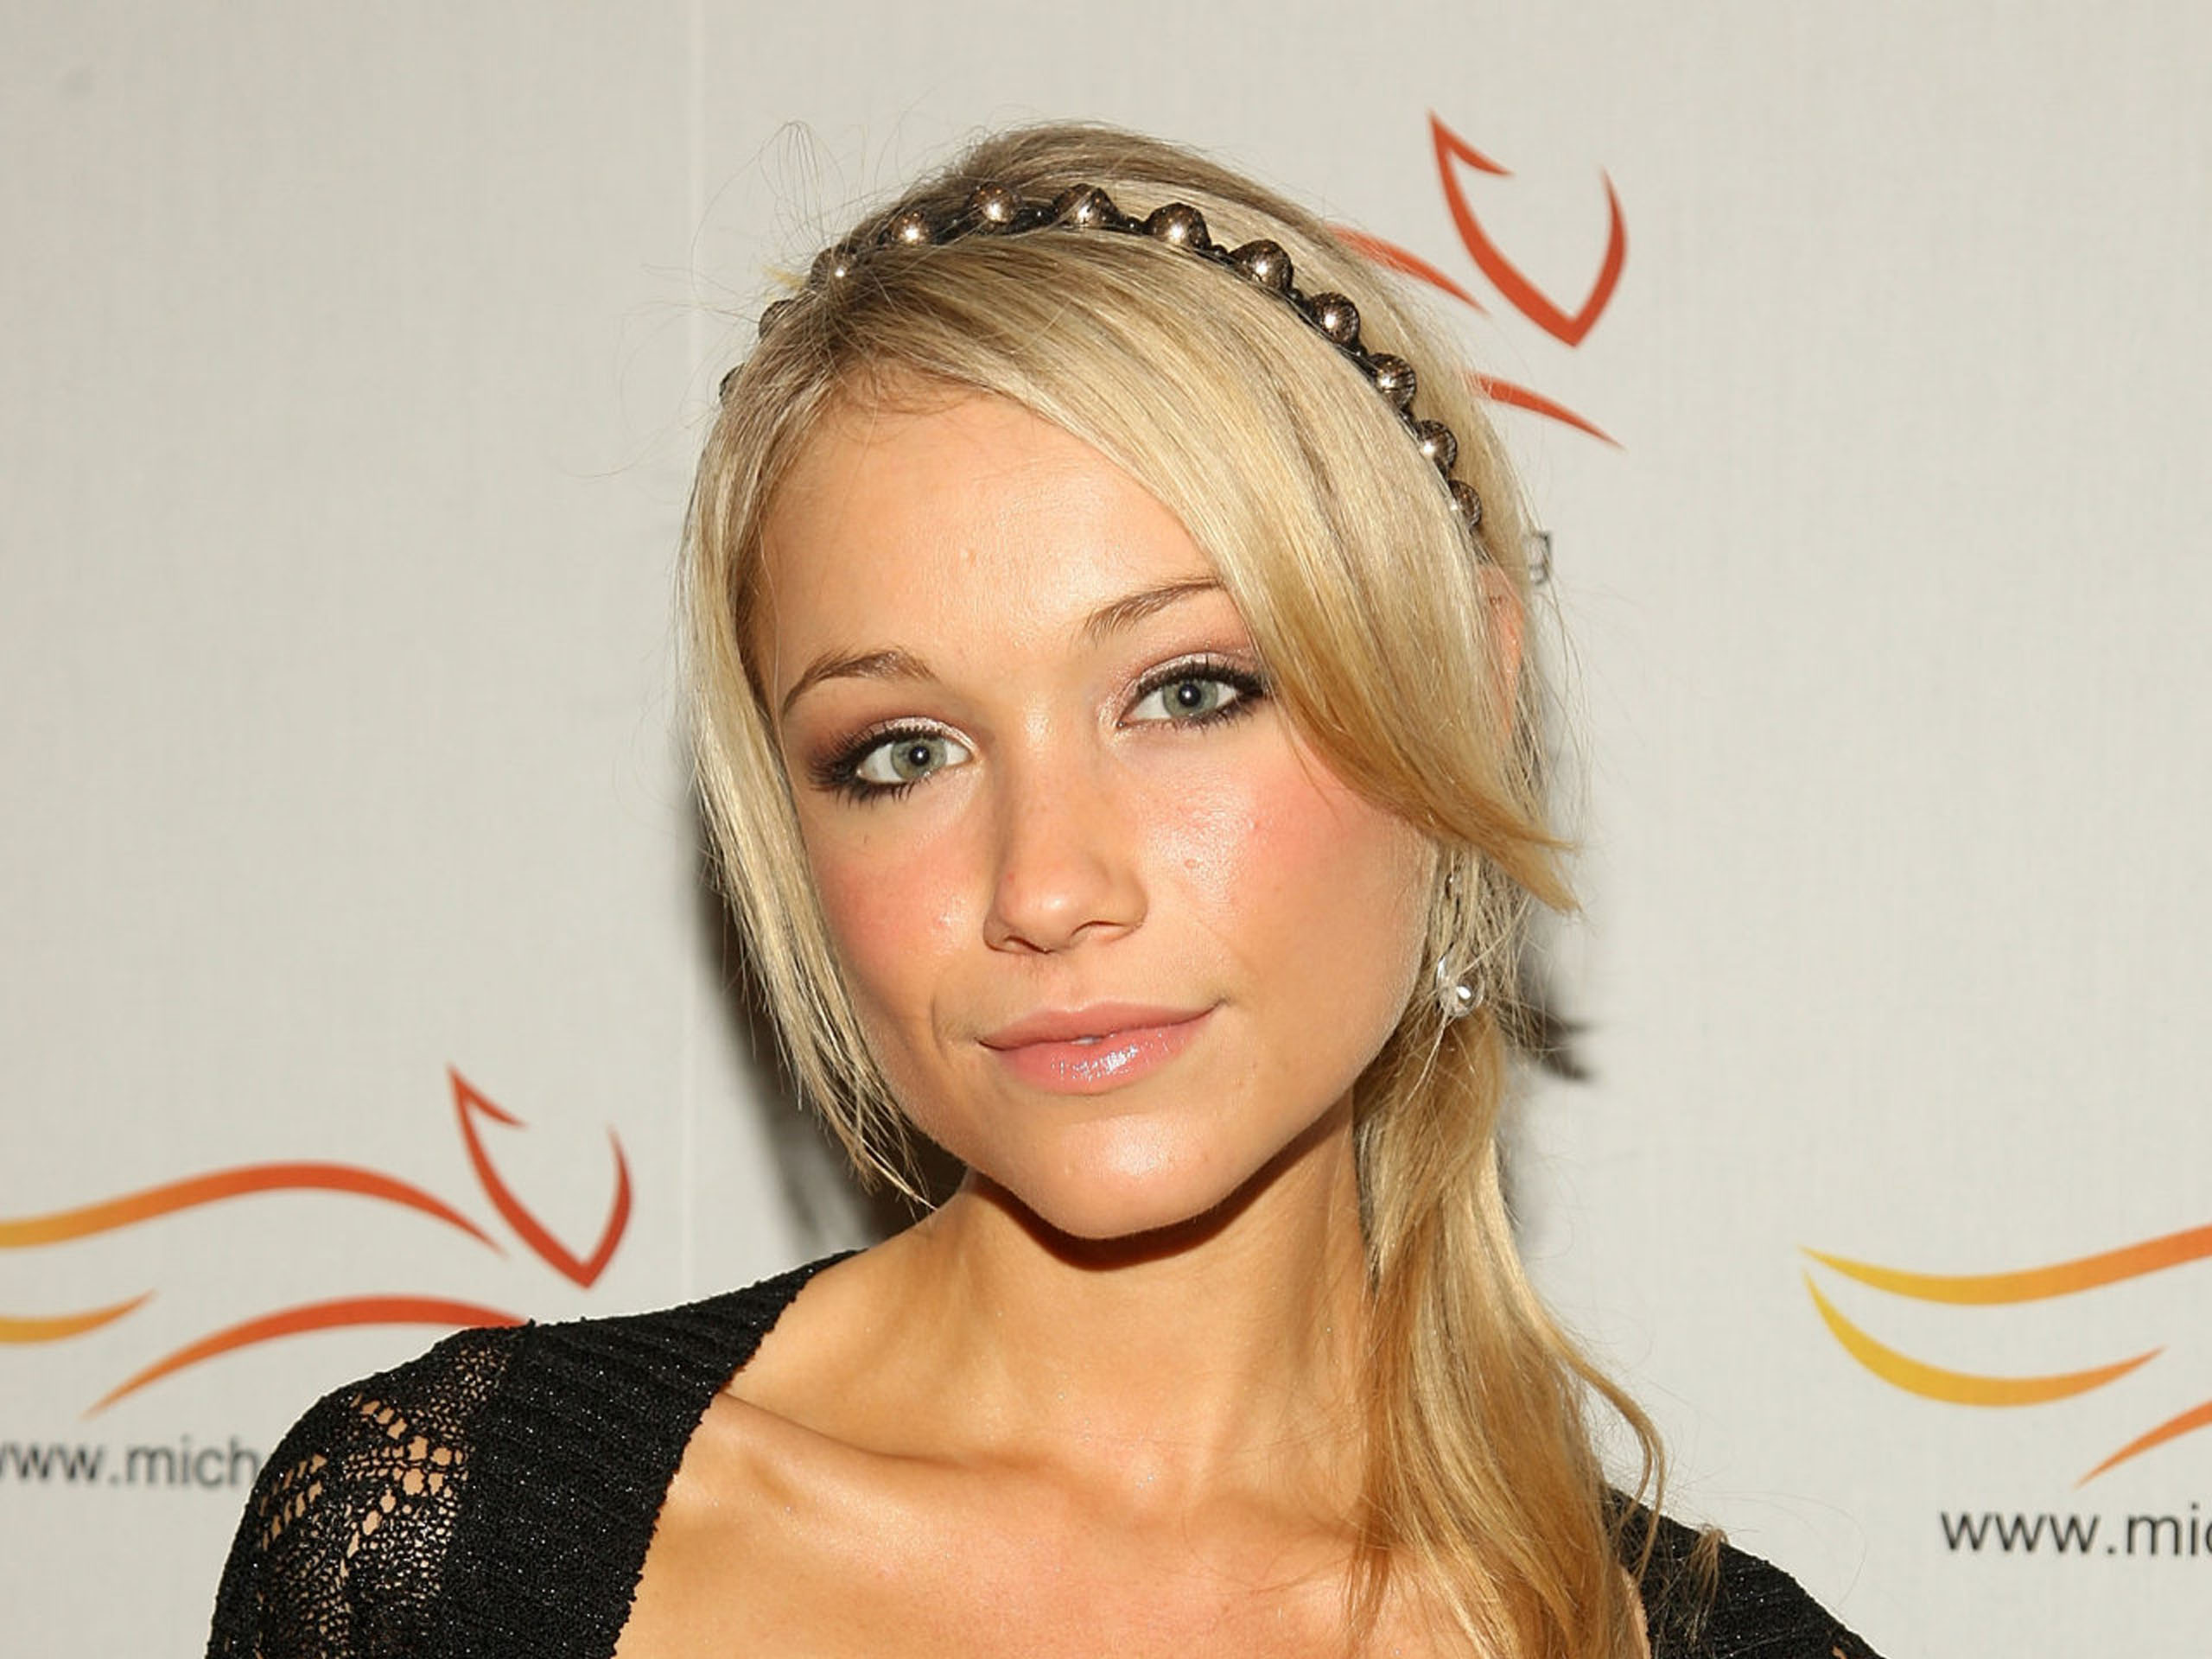 Katrina Bowden earned a  million dollar salary - leaving the net worth at 2 million in 2018